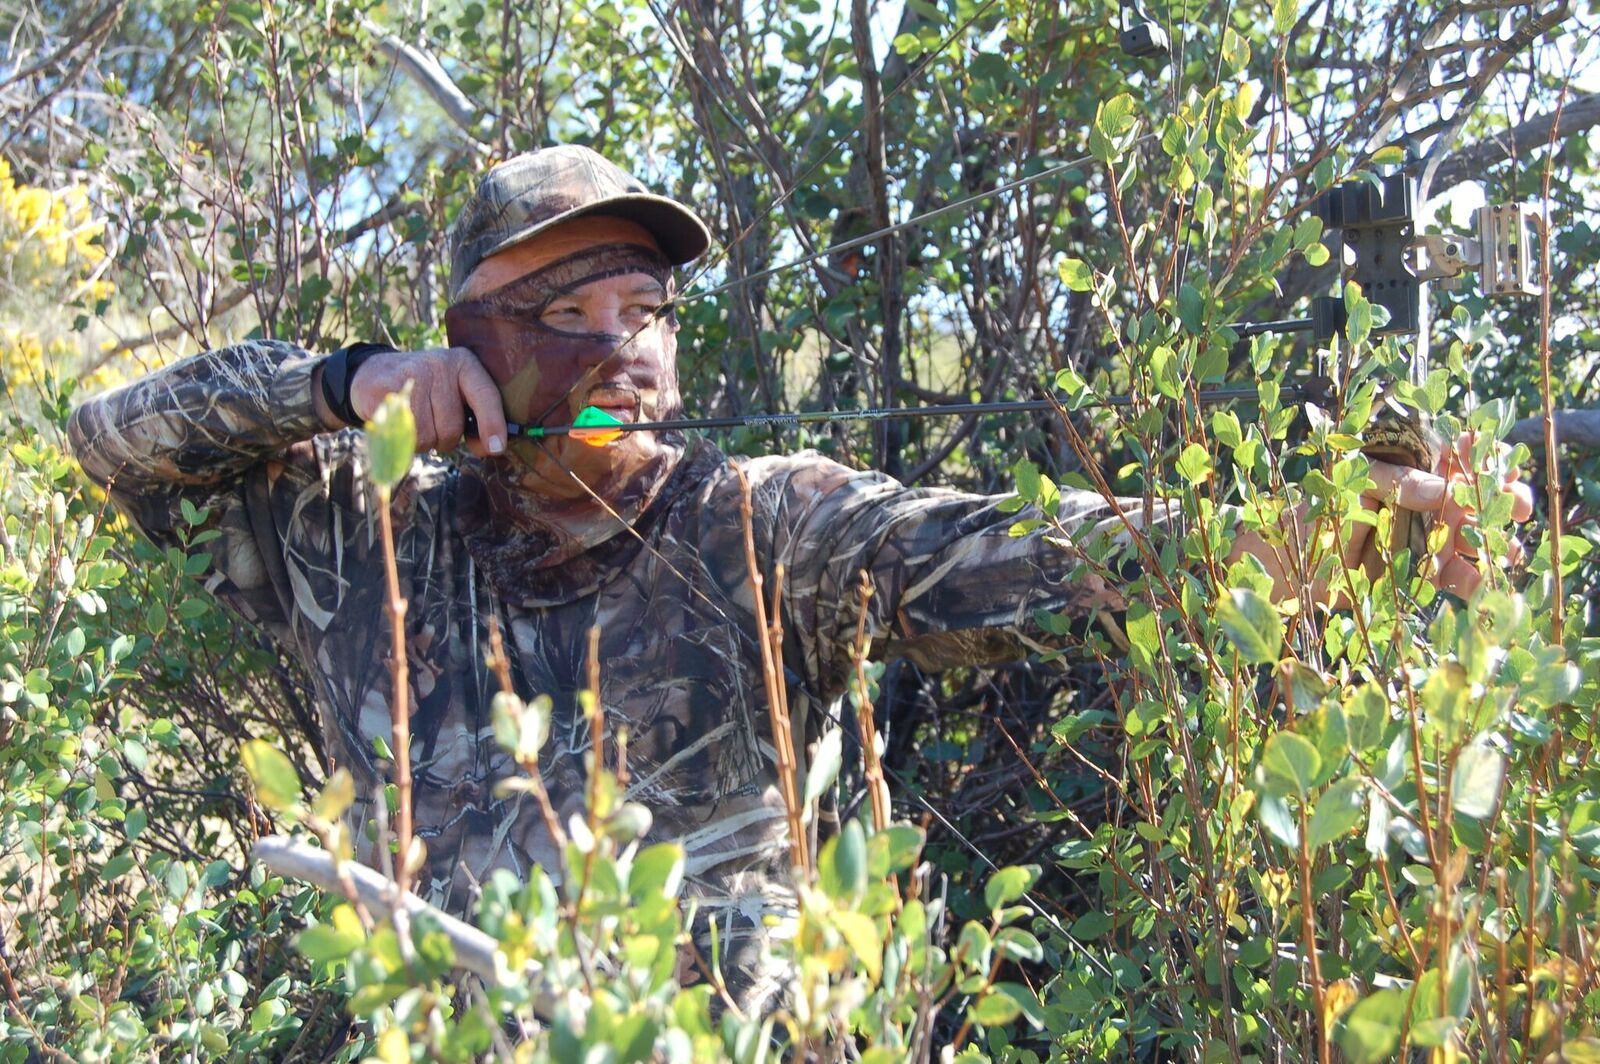 Bowhunter in Camo - Camo from head to toe is the standard dress code for the successful bow hunter.